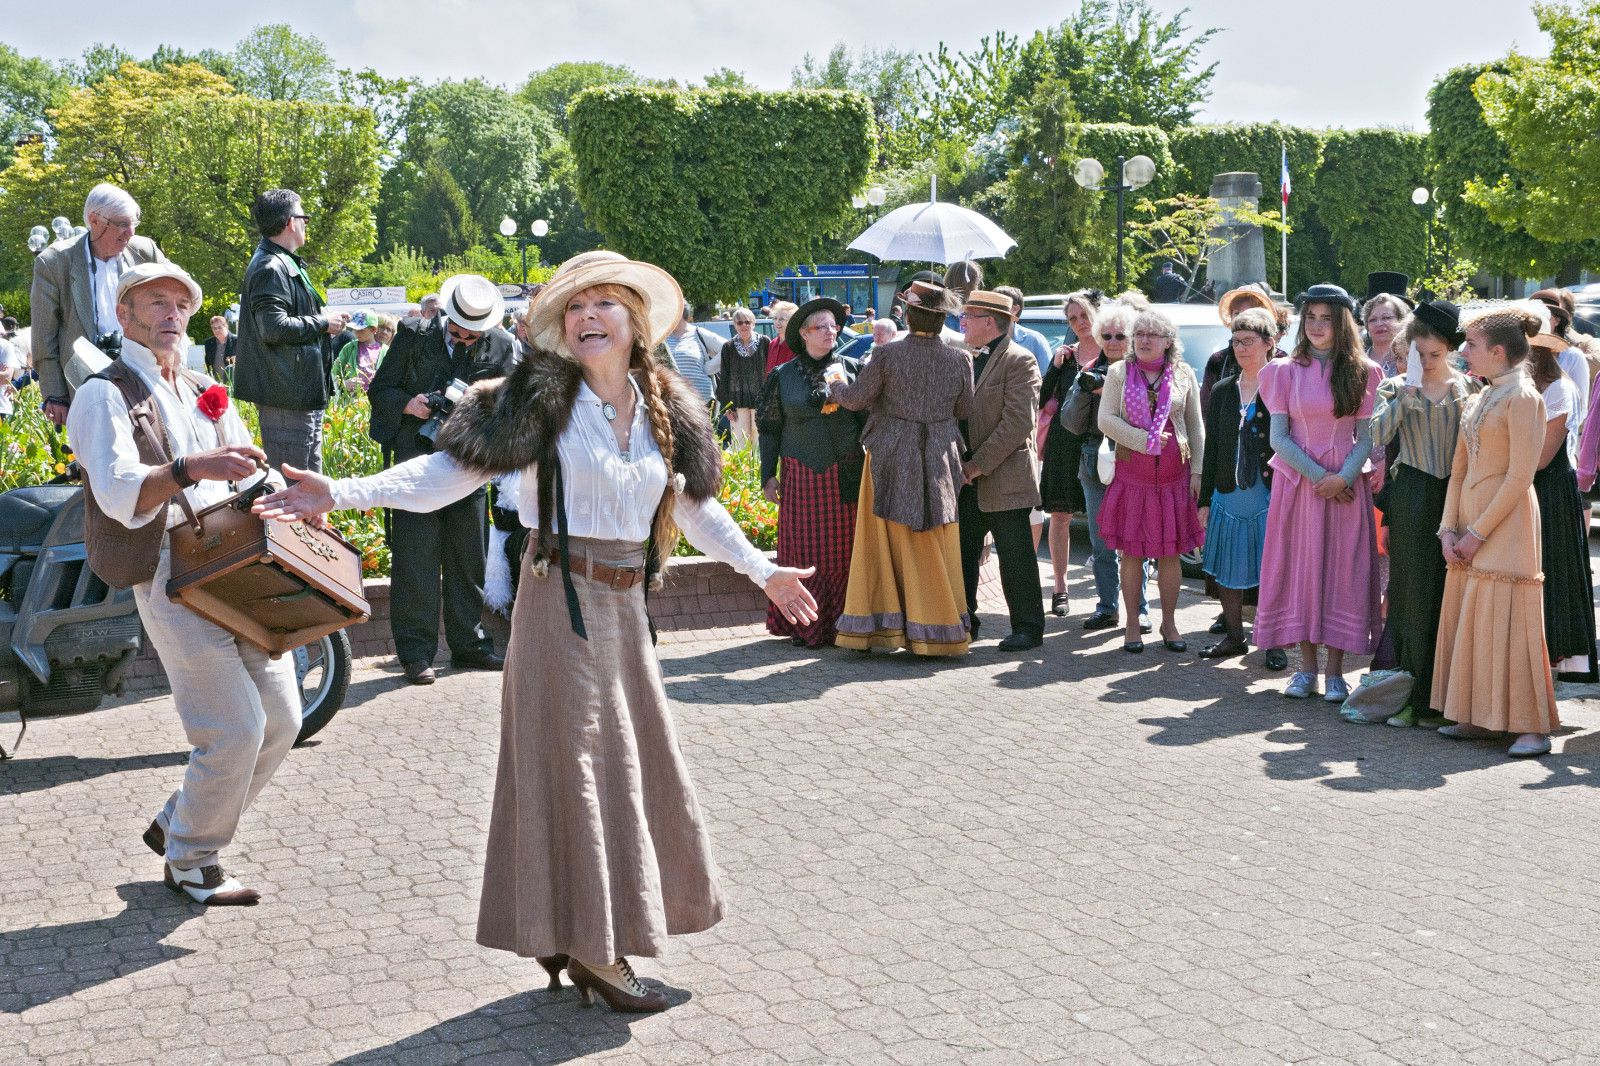 Photos : Offranville Belle-epoque